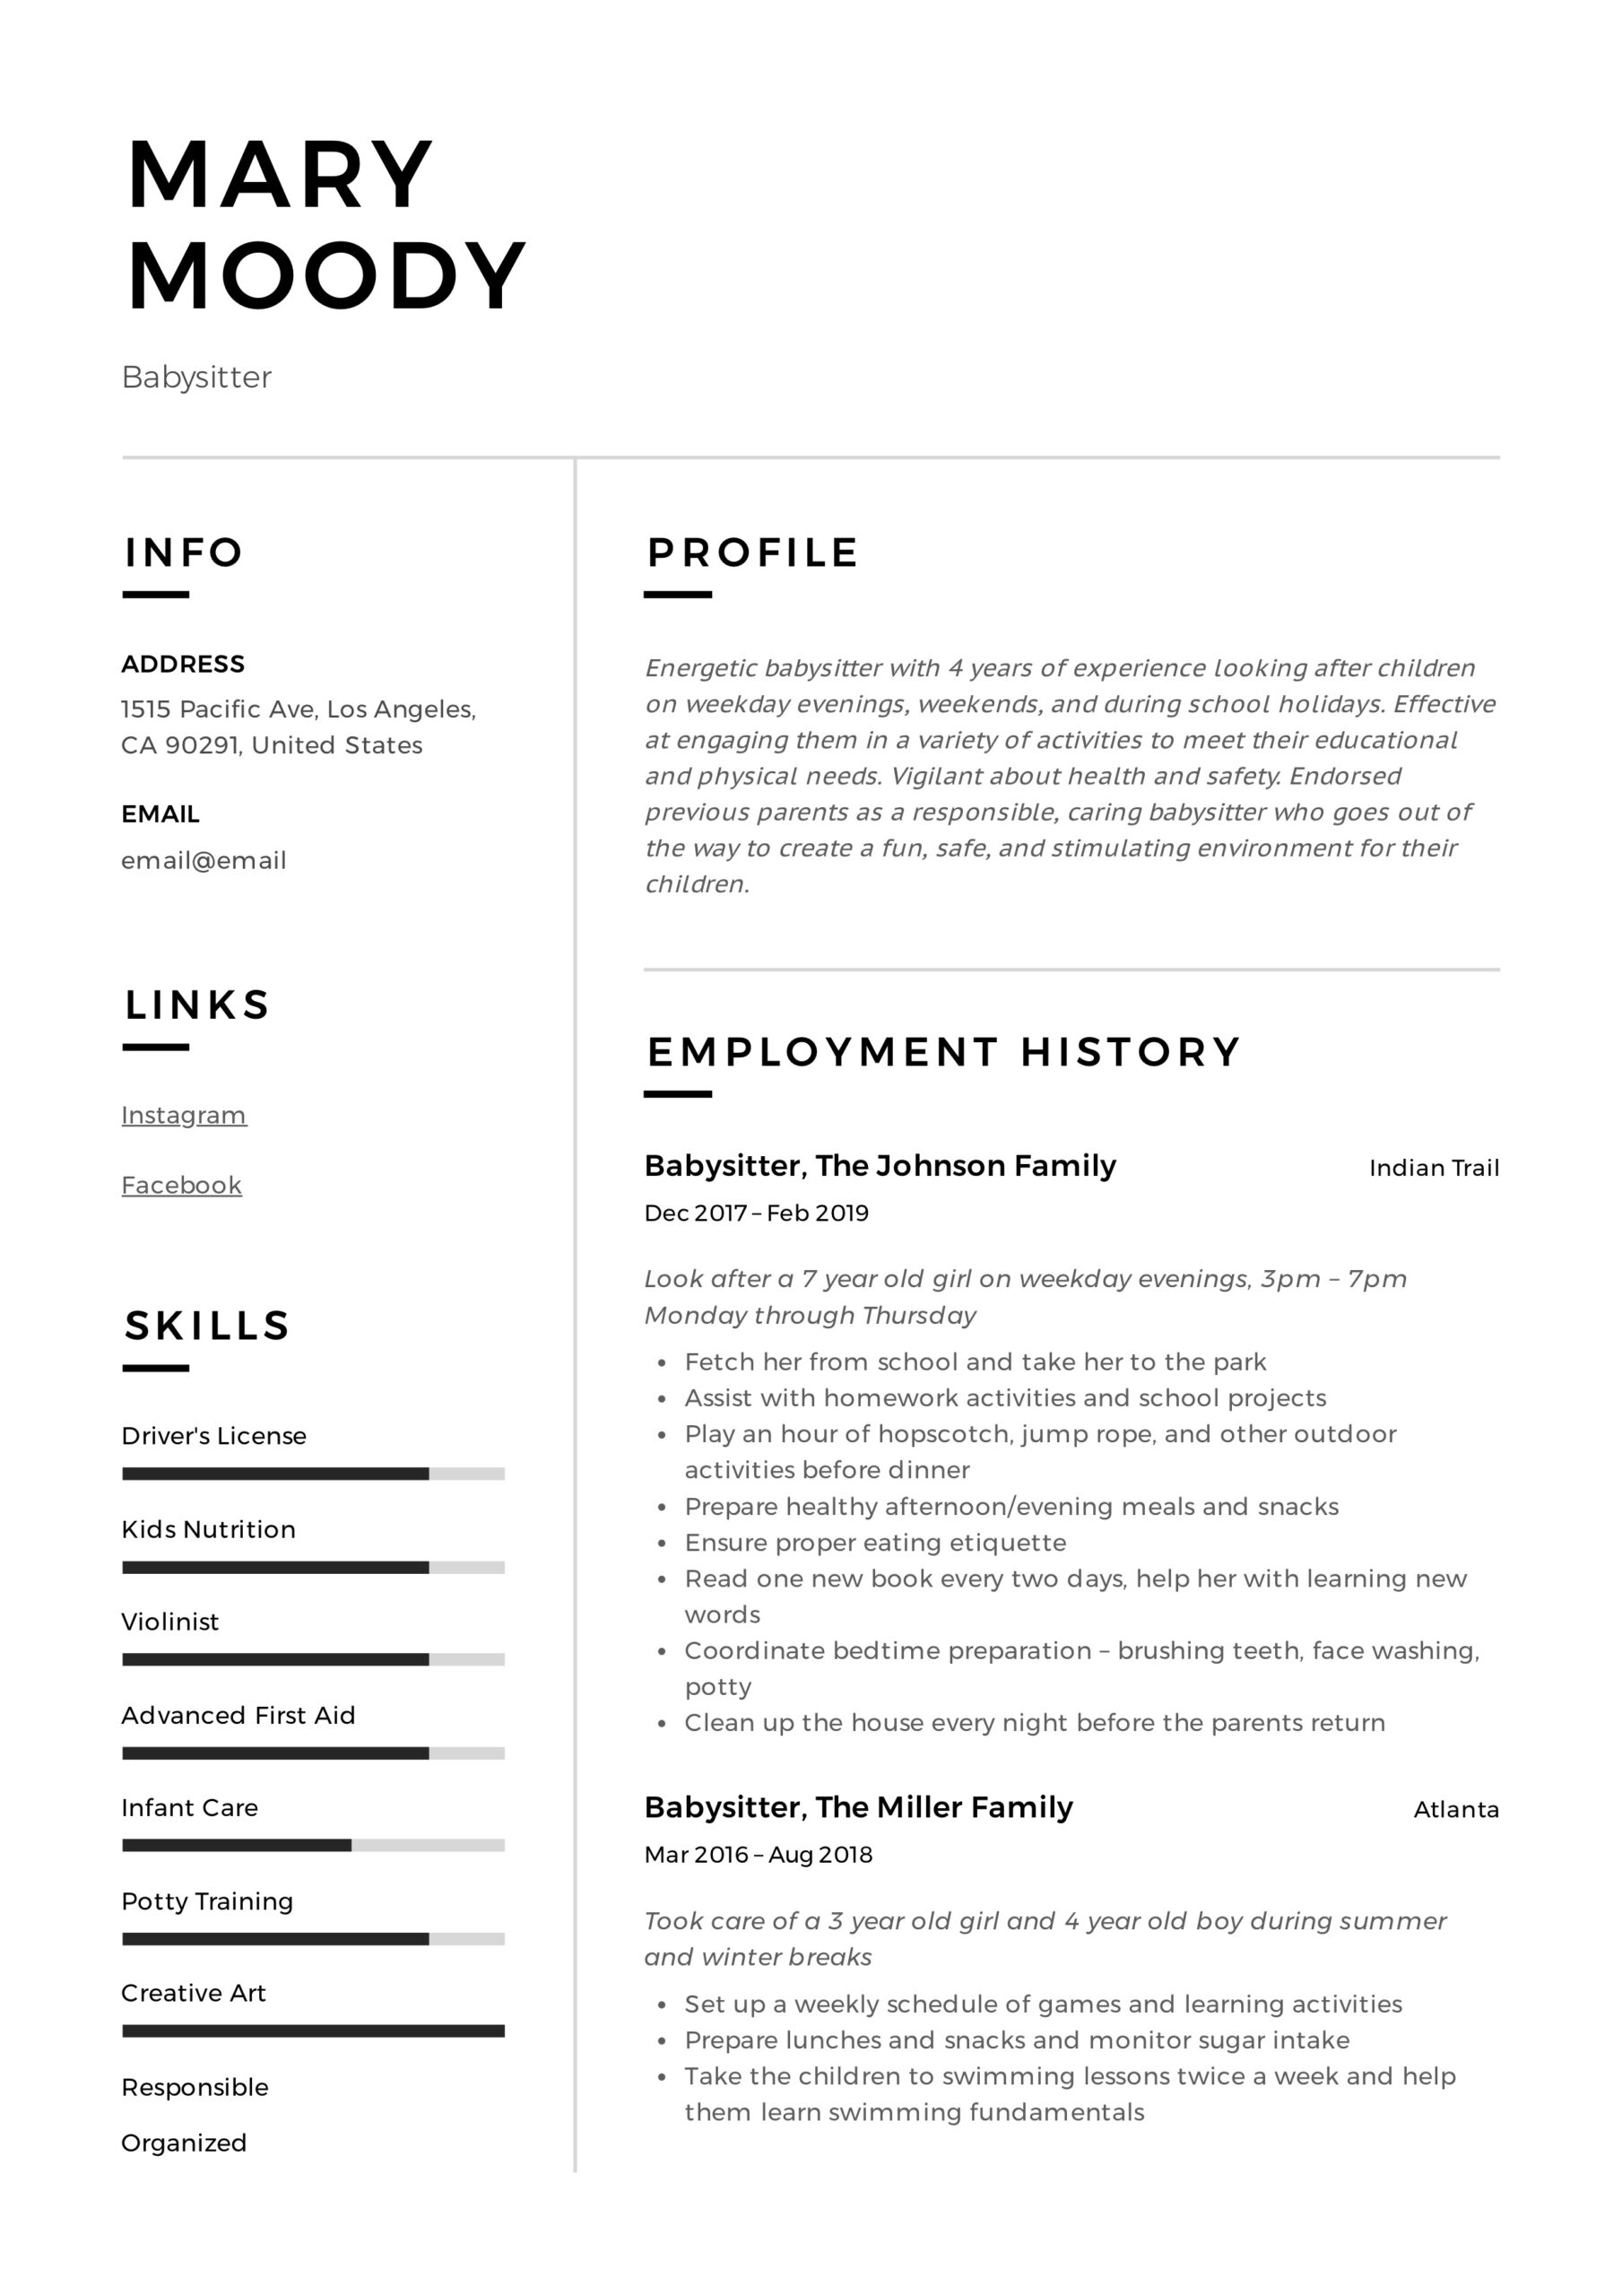 babysitter resume examples writing guide pdf job description for mary final draft Resume Babysitter Job Description For Resume